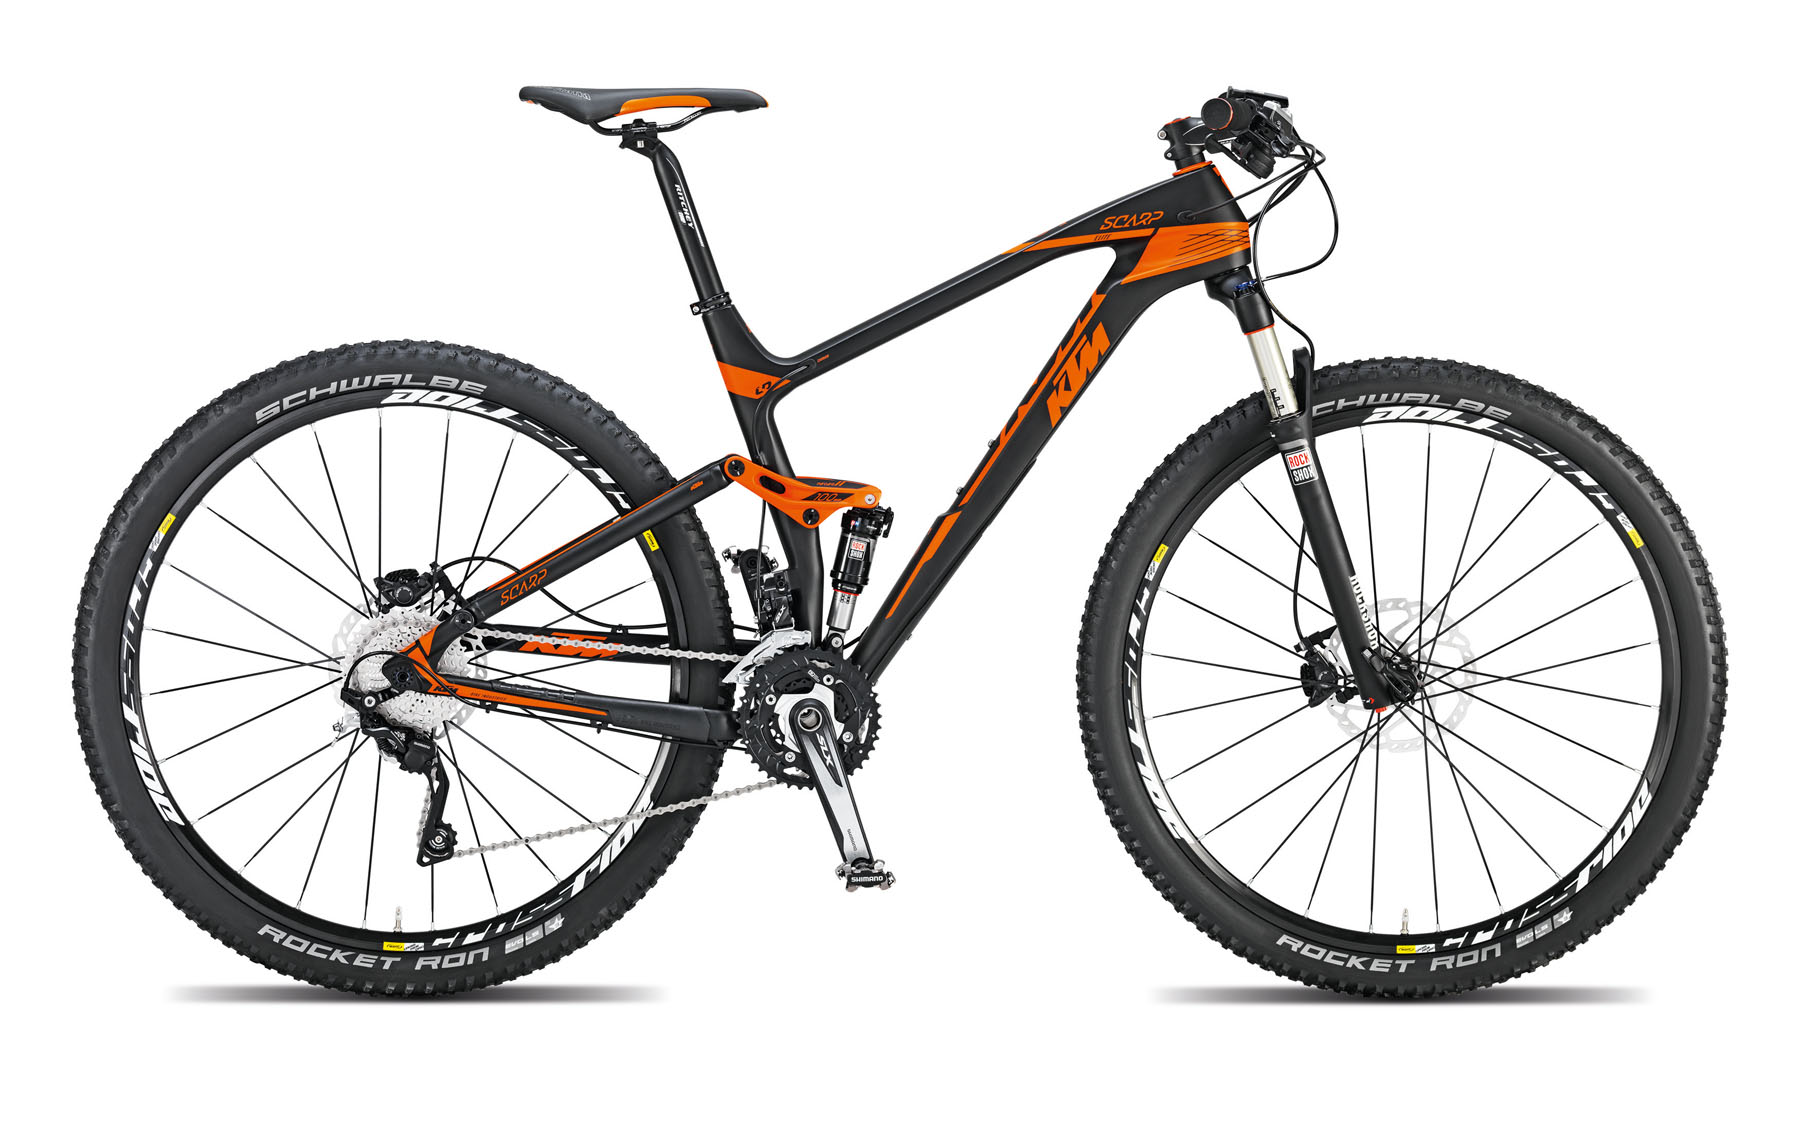 Bicicleta Ktm Full Suspension Scarp 29 Elite